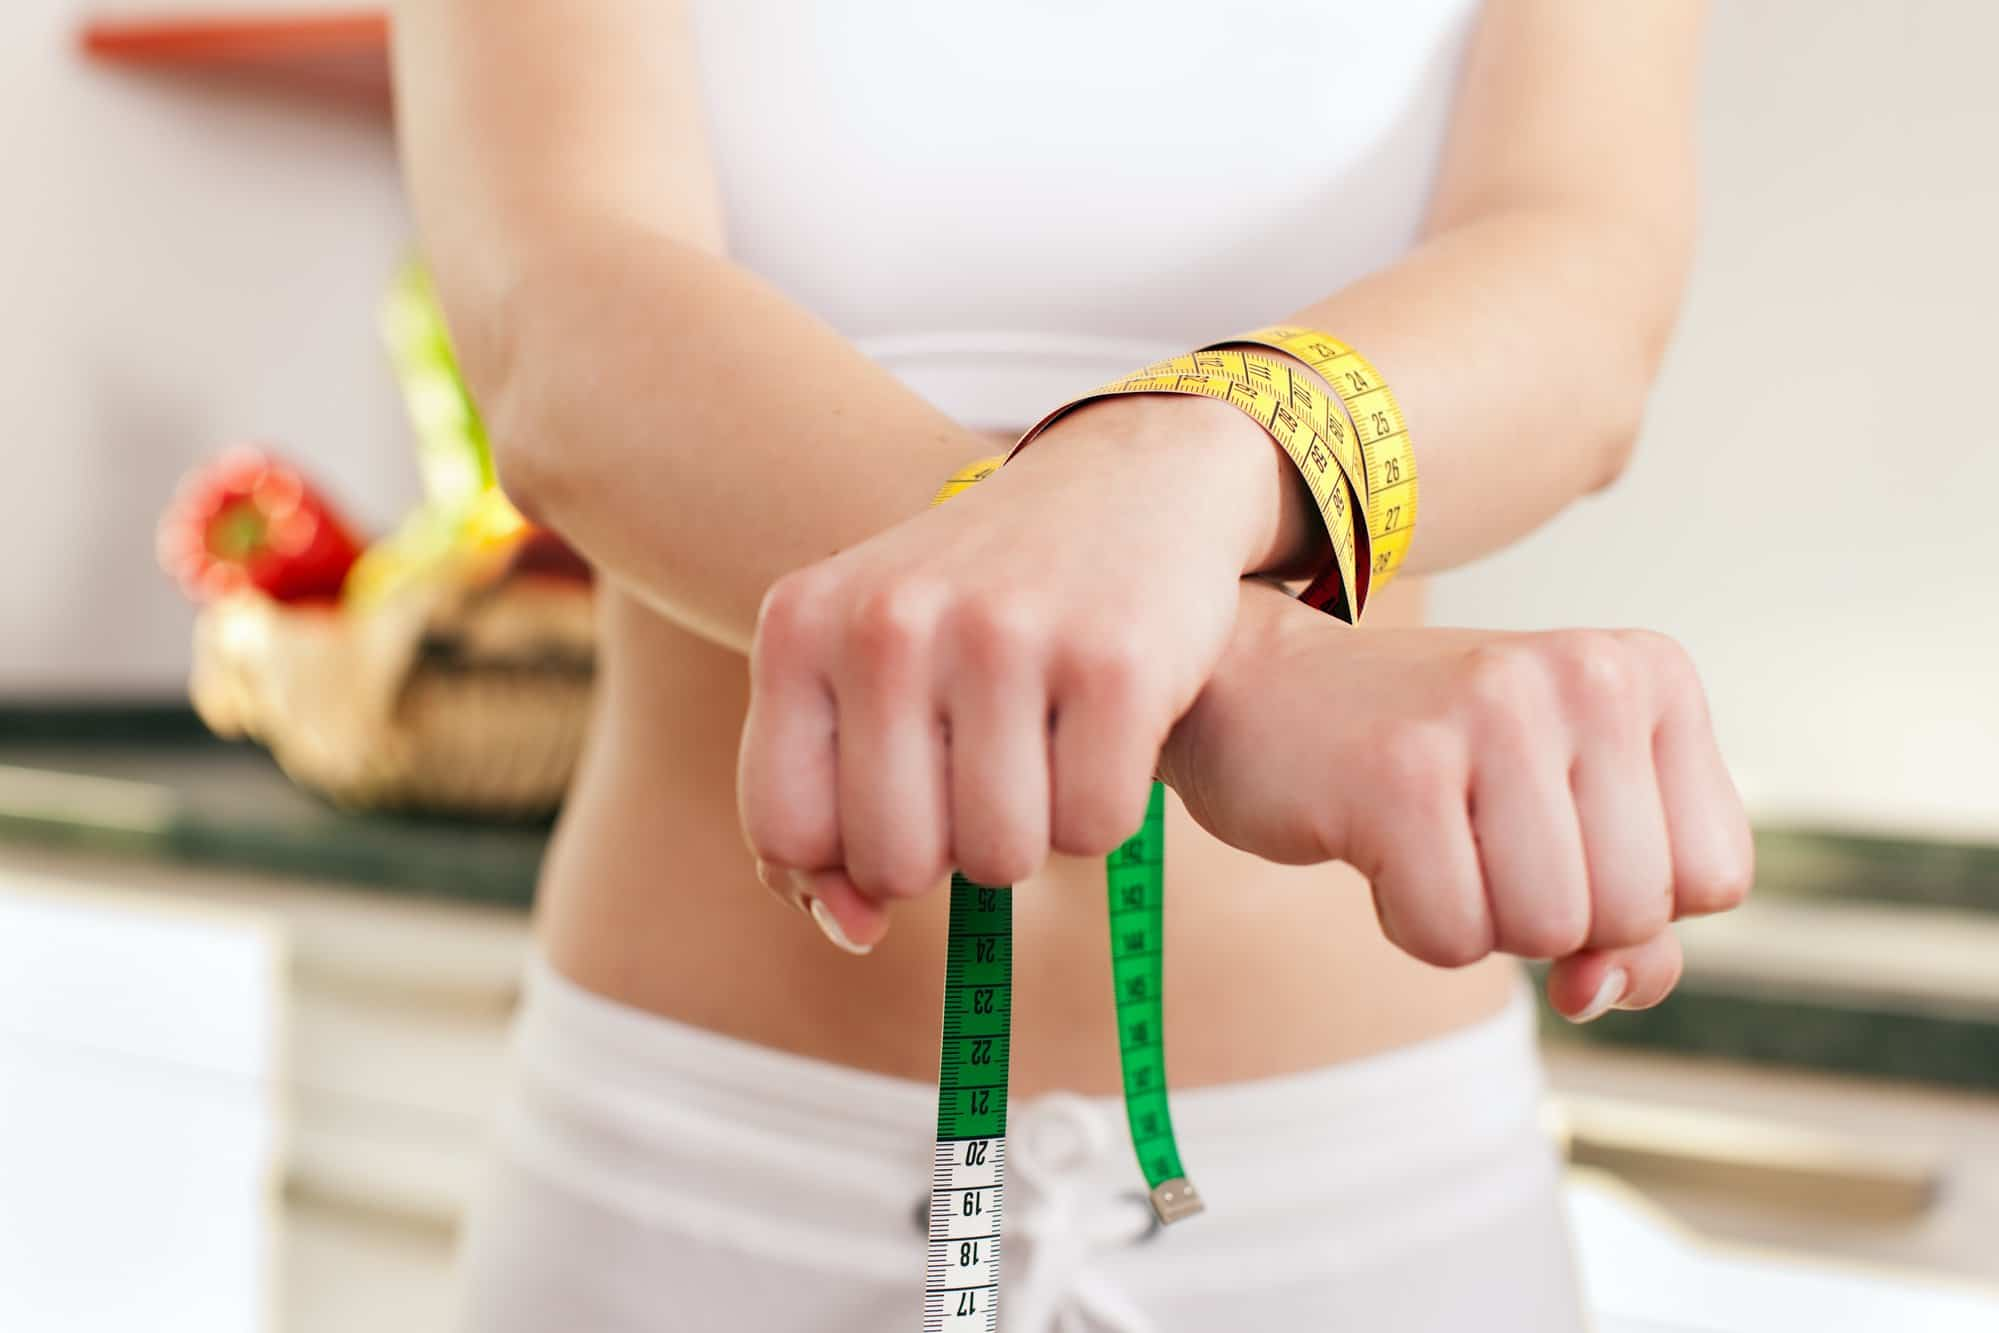 Why It's Hard for People With Eating Disorders to Get Help